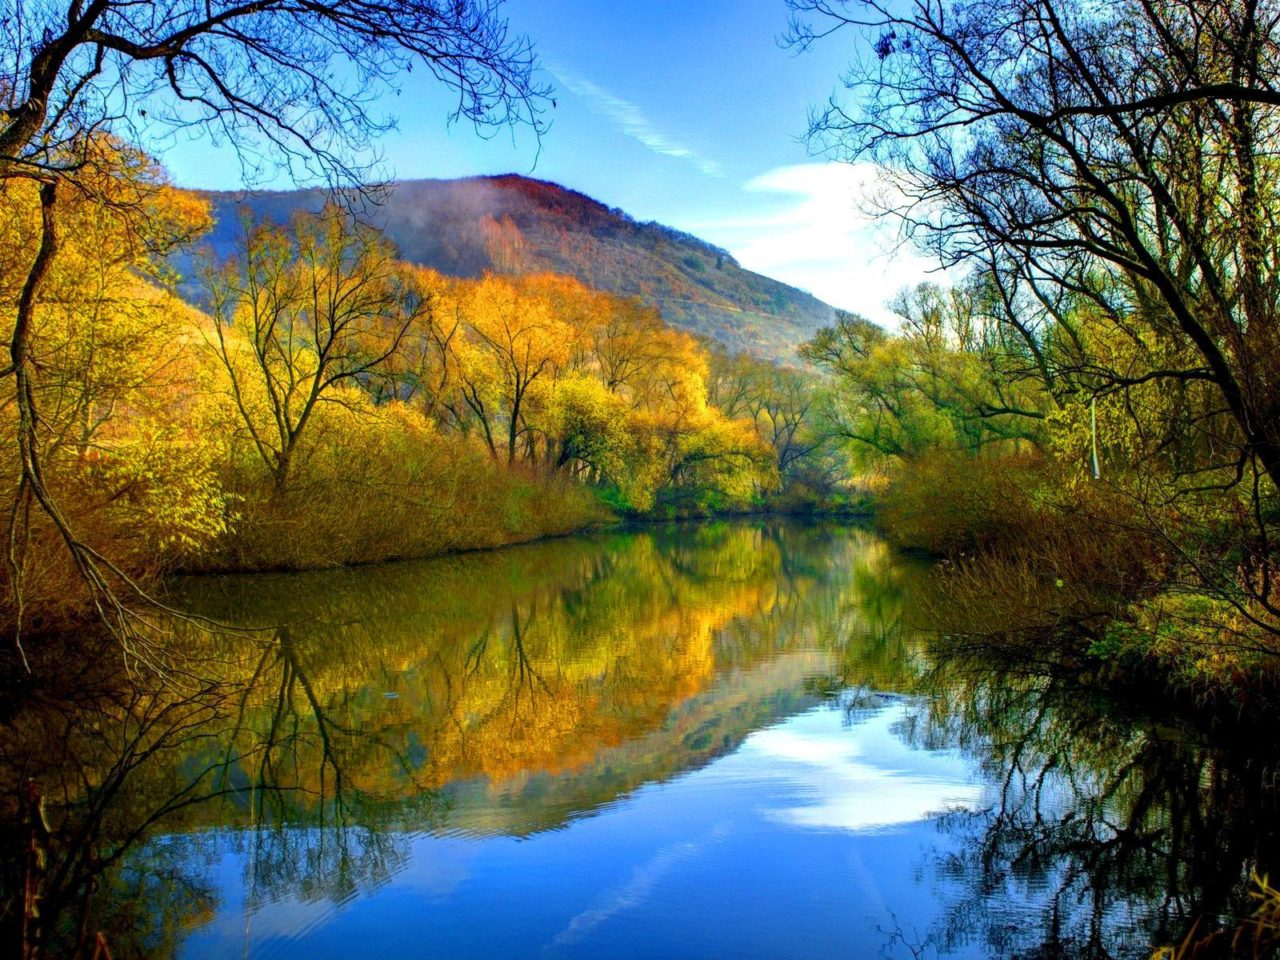 Fall Landscape Wallpaper Desktop Fall River Peaceful Water Willow With Yellow Leaves Blue